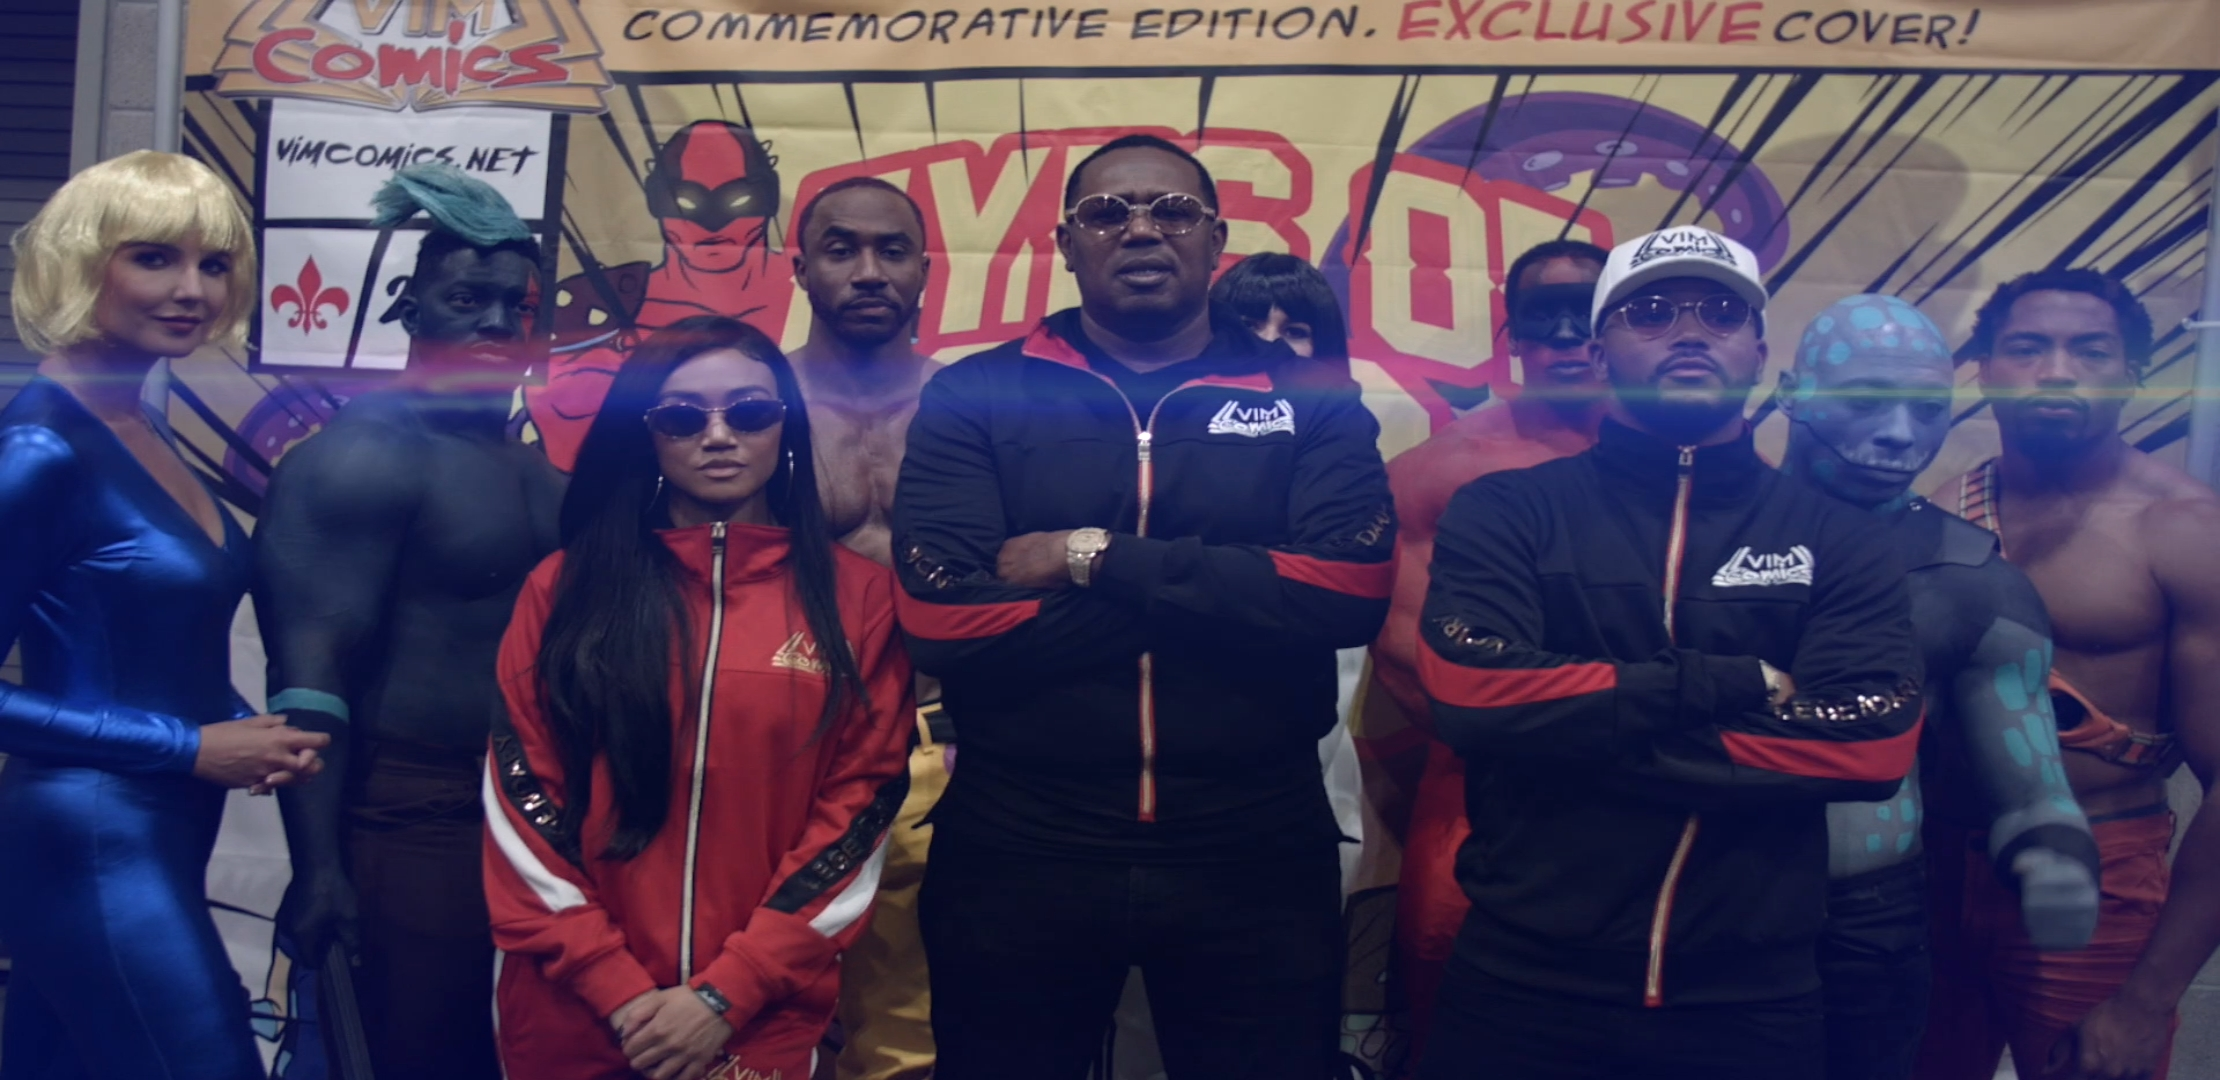 """MASTER P'S FAMILY VIM COMICS """"EYES OF ESCA"""" BEST NEW CHARACTERS AT COMIC-CON 2018"""